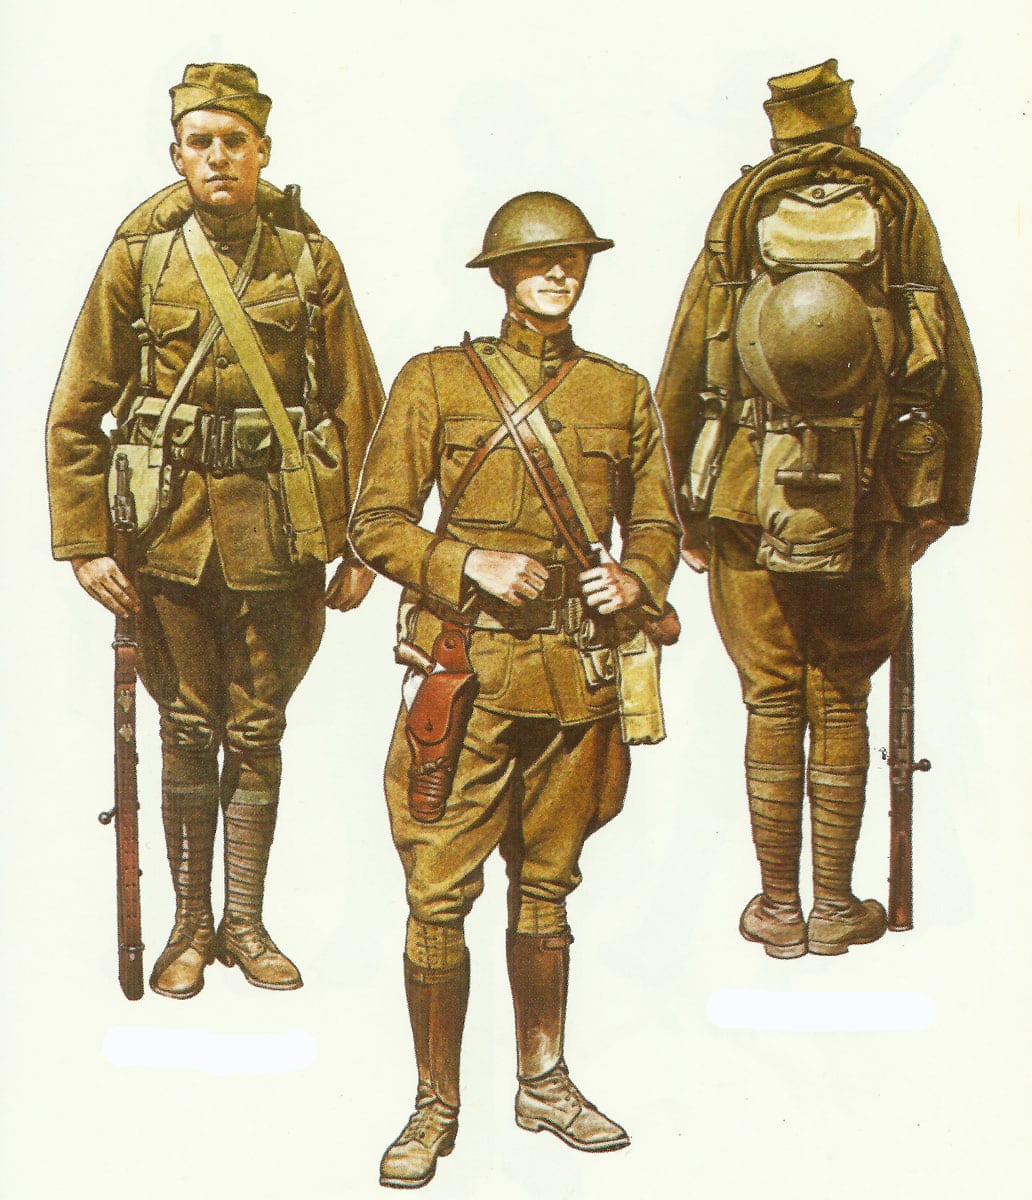 world war i and army Home » world war i world war i world war i » wwi german items world war i » wwi french items world war i » wwi us items uxp-0003, wwi us army promotion document to a man in the 82nd infantry our price: $3995 item #18202 uxp-0004, wwi us army officers portrait.